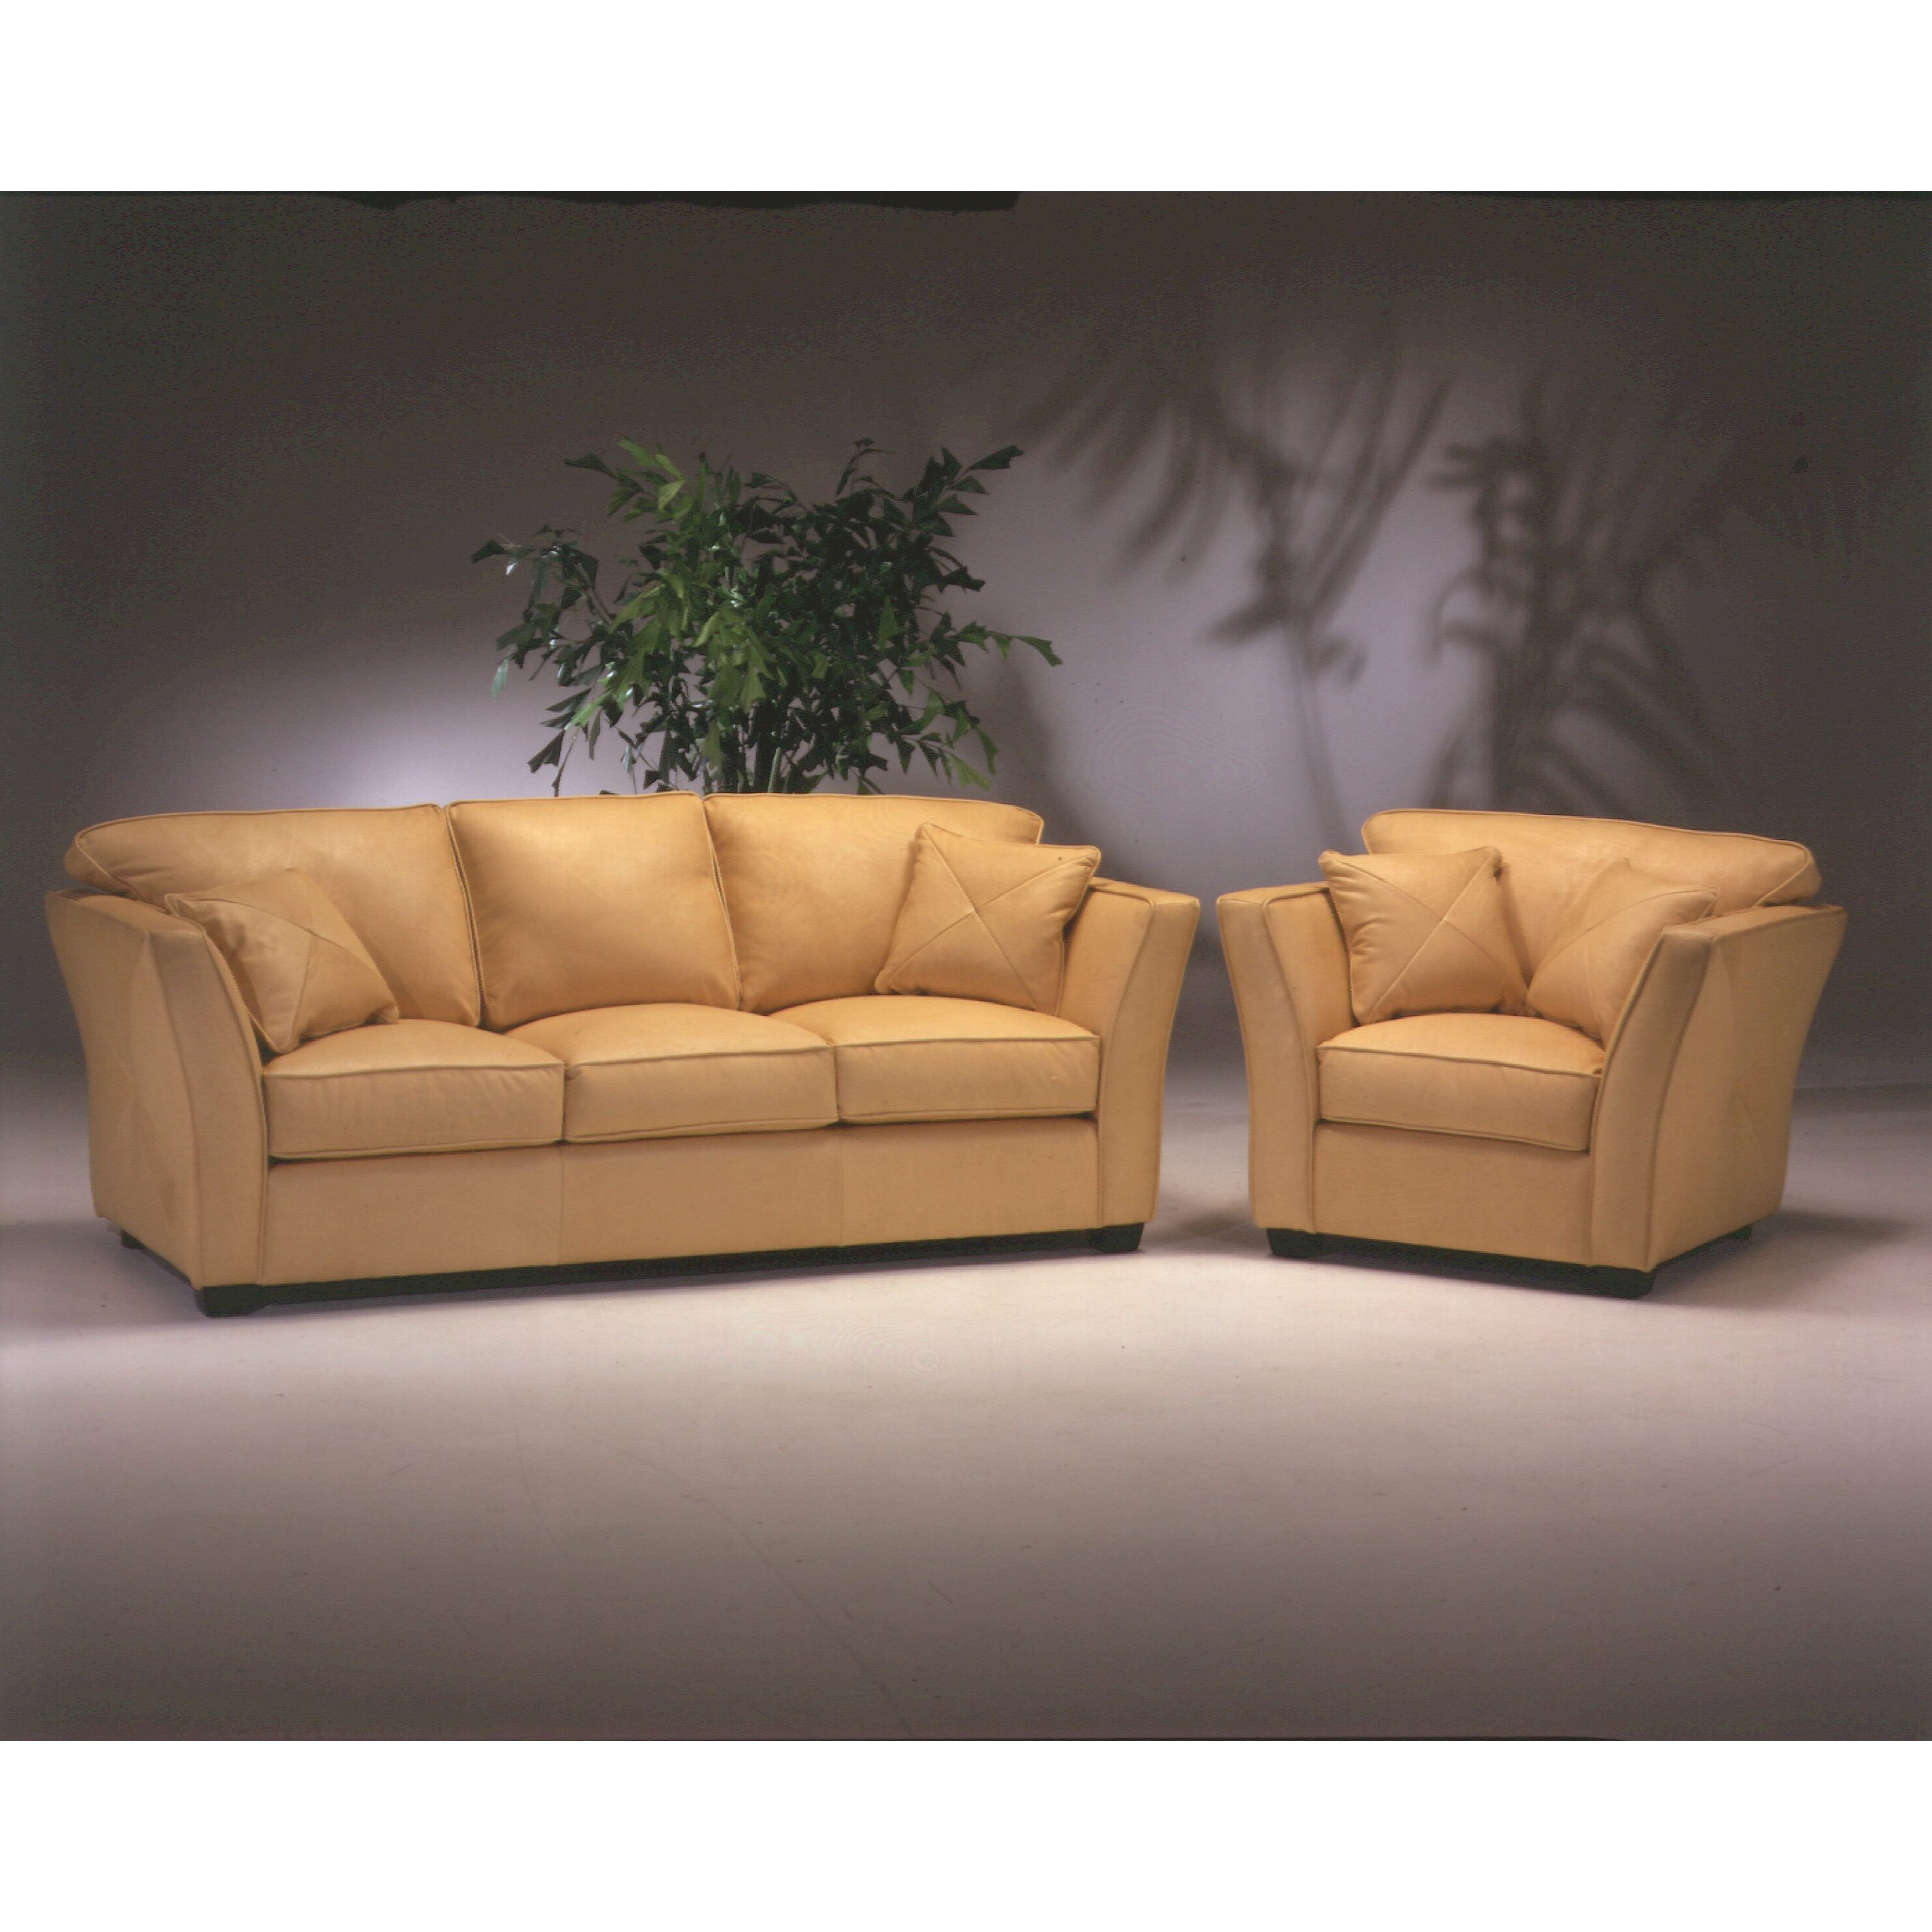 Leather Living Room Sets Omnia Leather Manhattan 3 Seat Leather Living Room Set Reviews